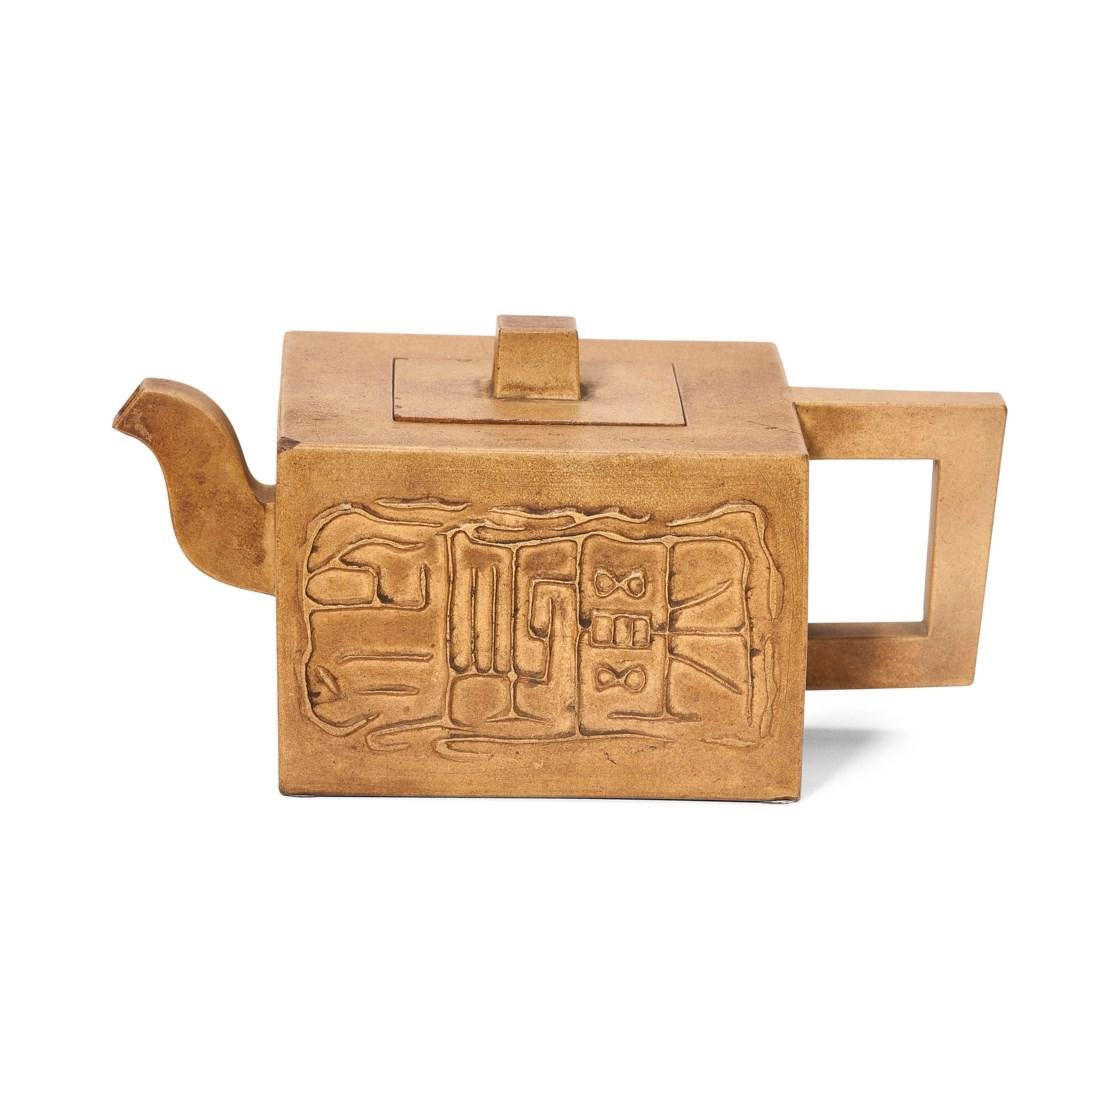 A YIXING SQUARE TEAPOT AND COVER